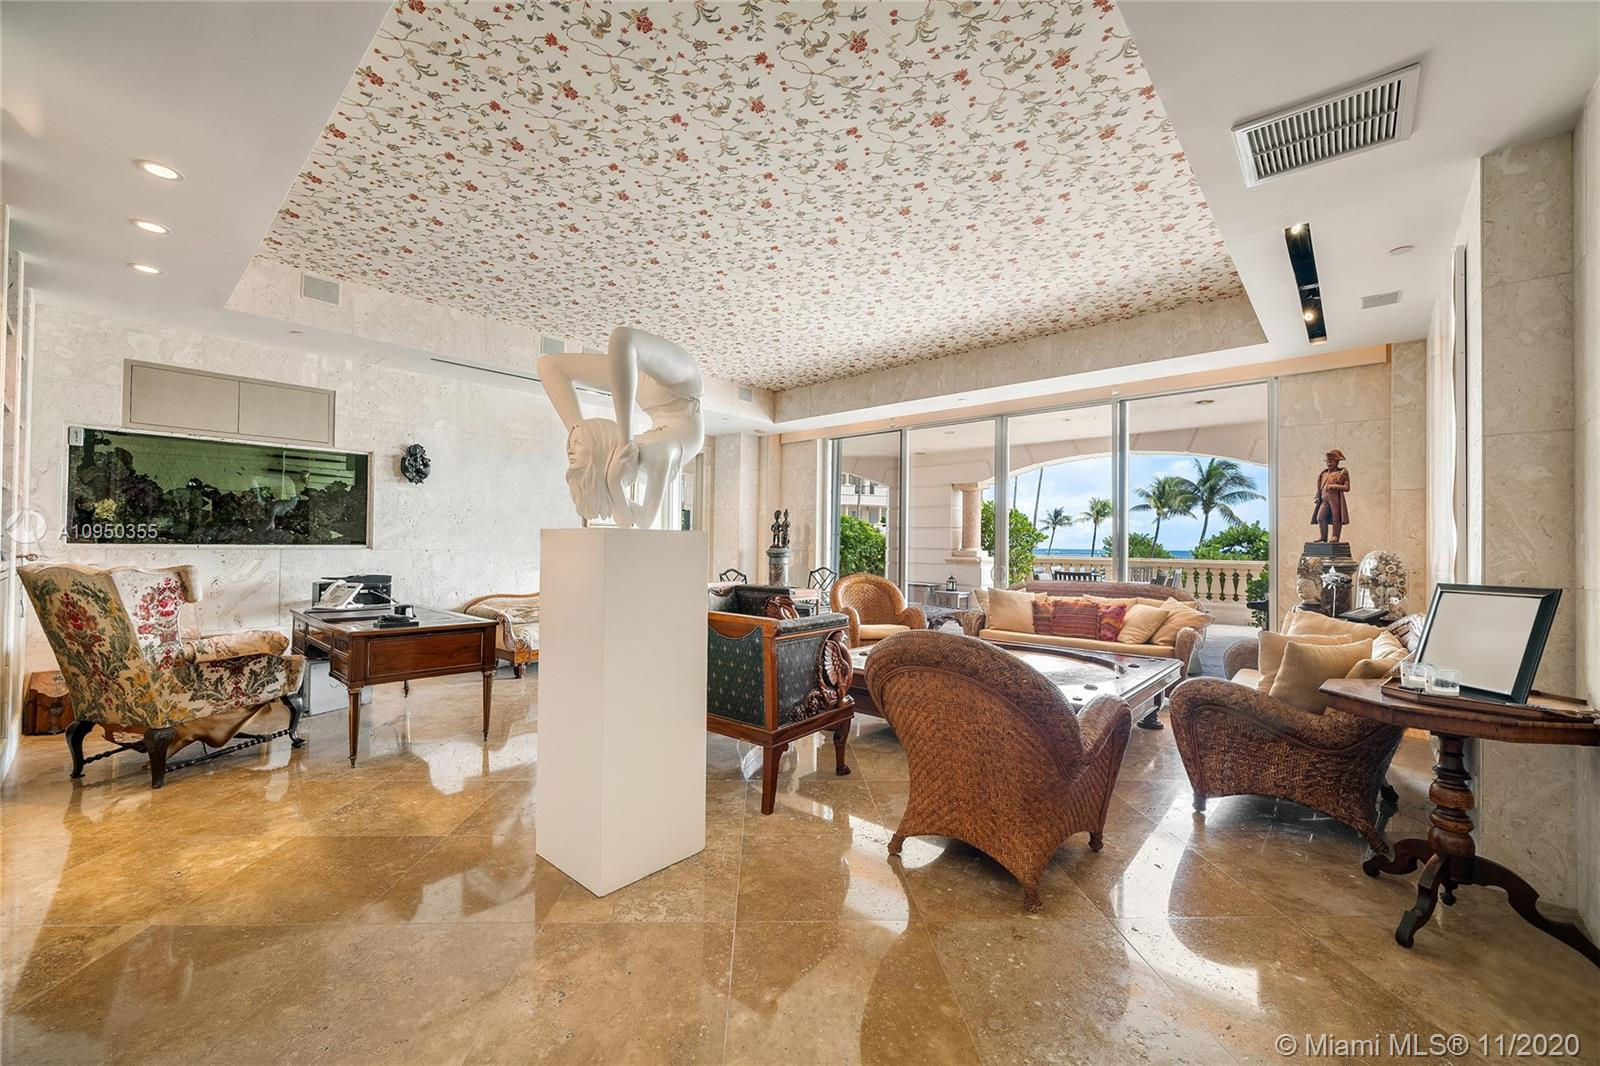 7412 Fisher Island Dr, Unit #7412 Luxury Real Estate